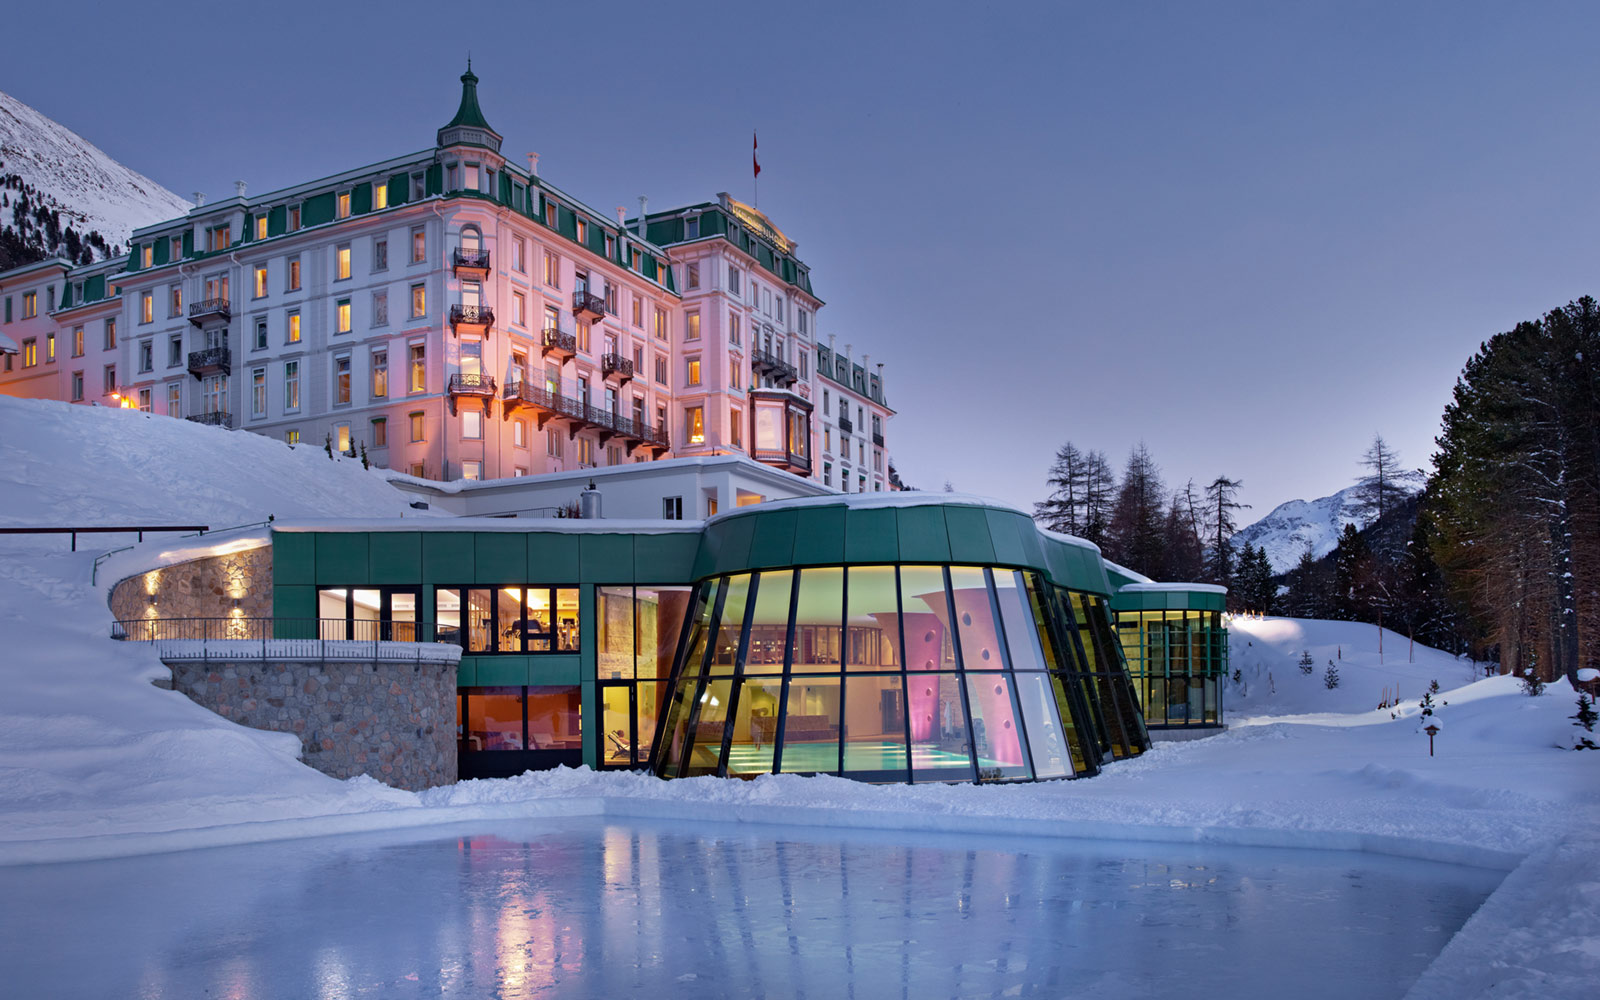 Grand Hotel Kronenhof, St. Moritz, Switzerland